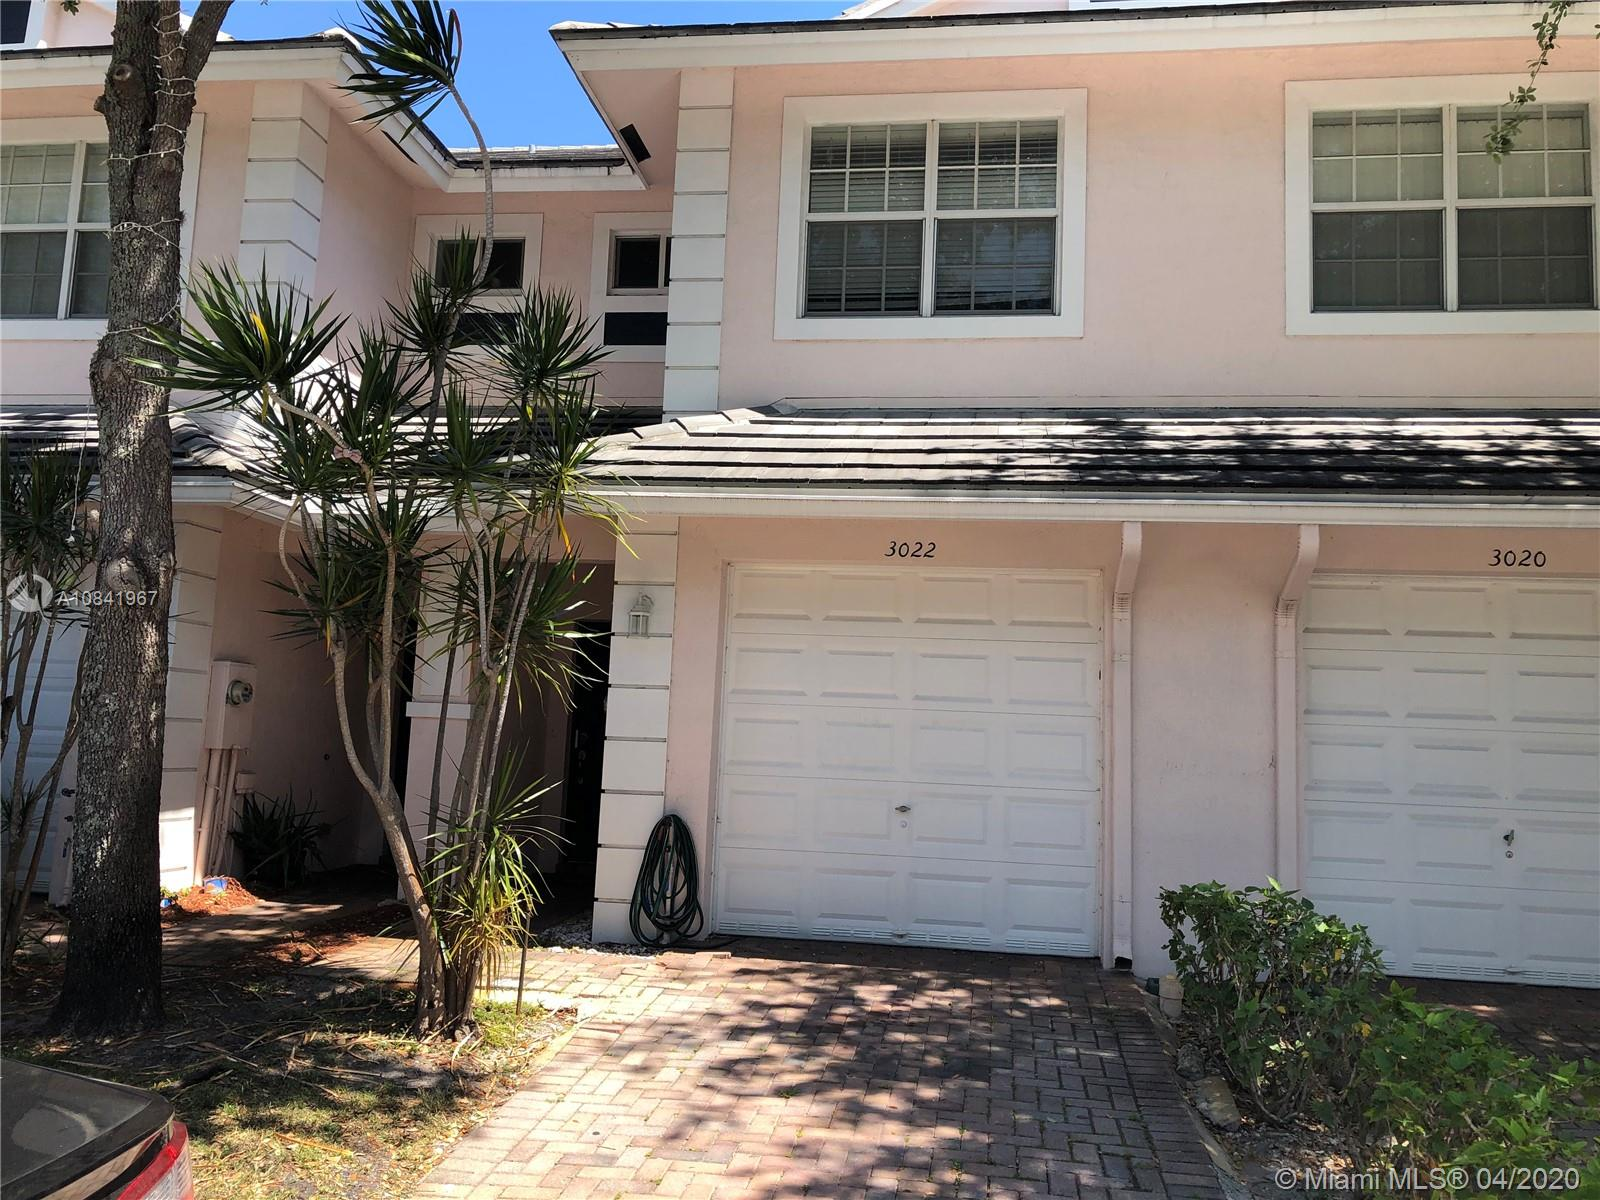 Elegant 2bed/2.5bath + 1 car attached garage townhouse conveniently located in a well maintained, family oriented community w/easy access to downtown Fort Lauderdale and major highways just minutes to I95. Washer and dryer inside, cooks will appreciate the open kitchen with attractive cabinetry and counter tops & stainless steel appliances, adjacent family room provides ample room for relaxing and entertaining, large master suite, Jack and Jill bathroom, Large walk-in closet provides ample storage, large bonus room upstairs with two master suites with walk-in closets. easy to add a third bedroom in place of the current space, HURRICANE IMPACT GLASS WINDOWS THROUGHOUT! Community is pet friendly, has a nice community pool, playground and a low HOA fees, 2 pets allowed.